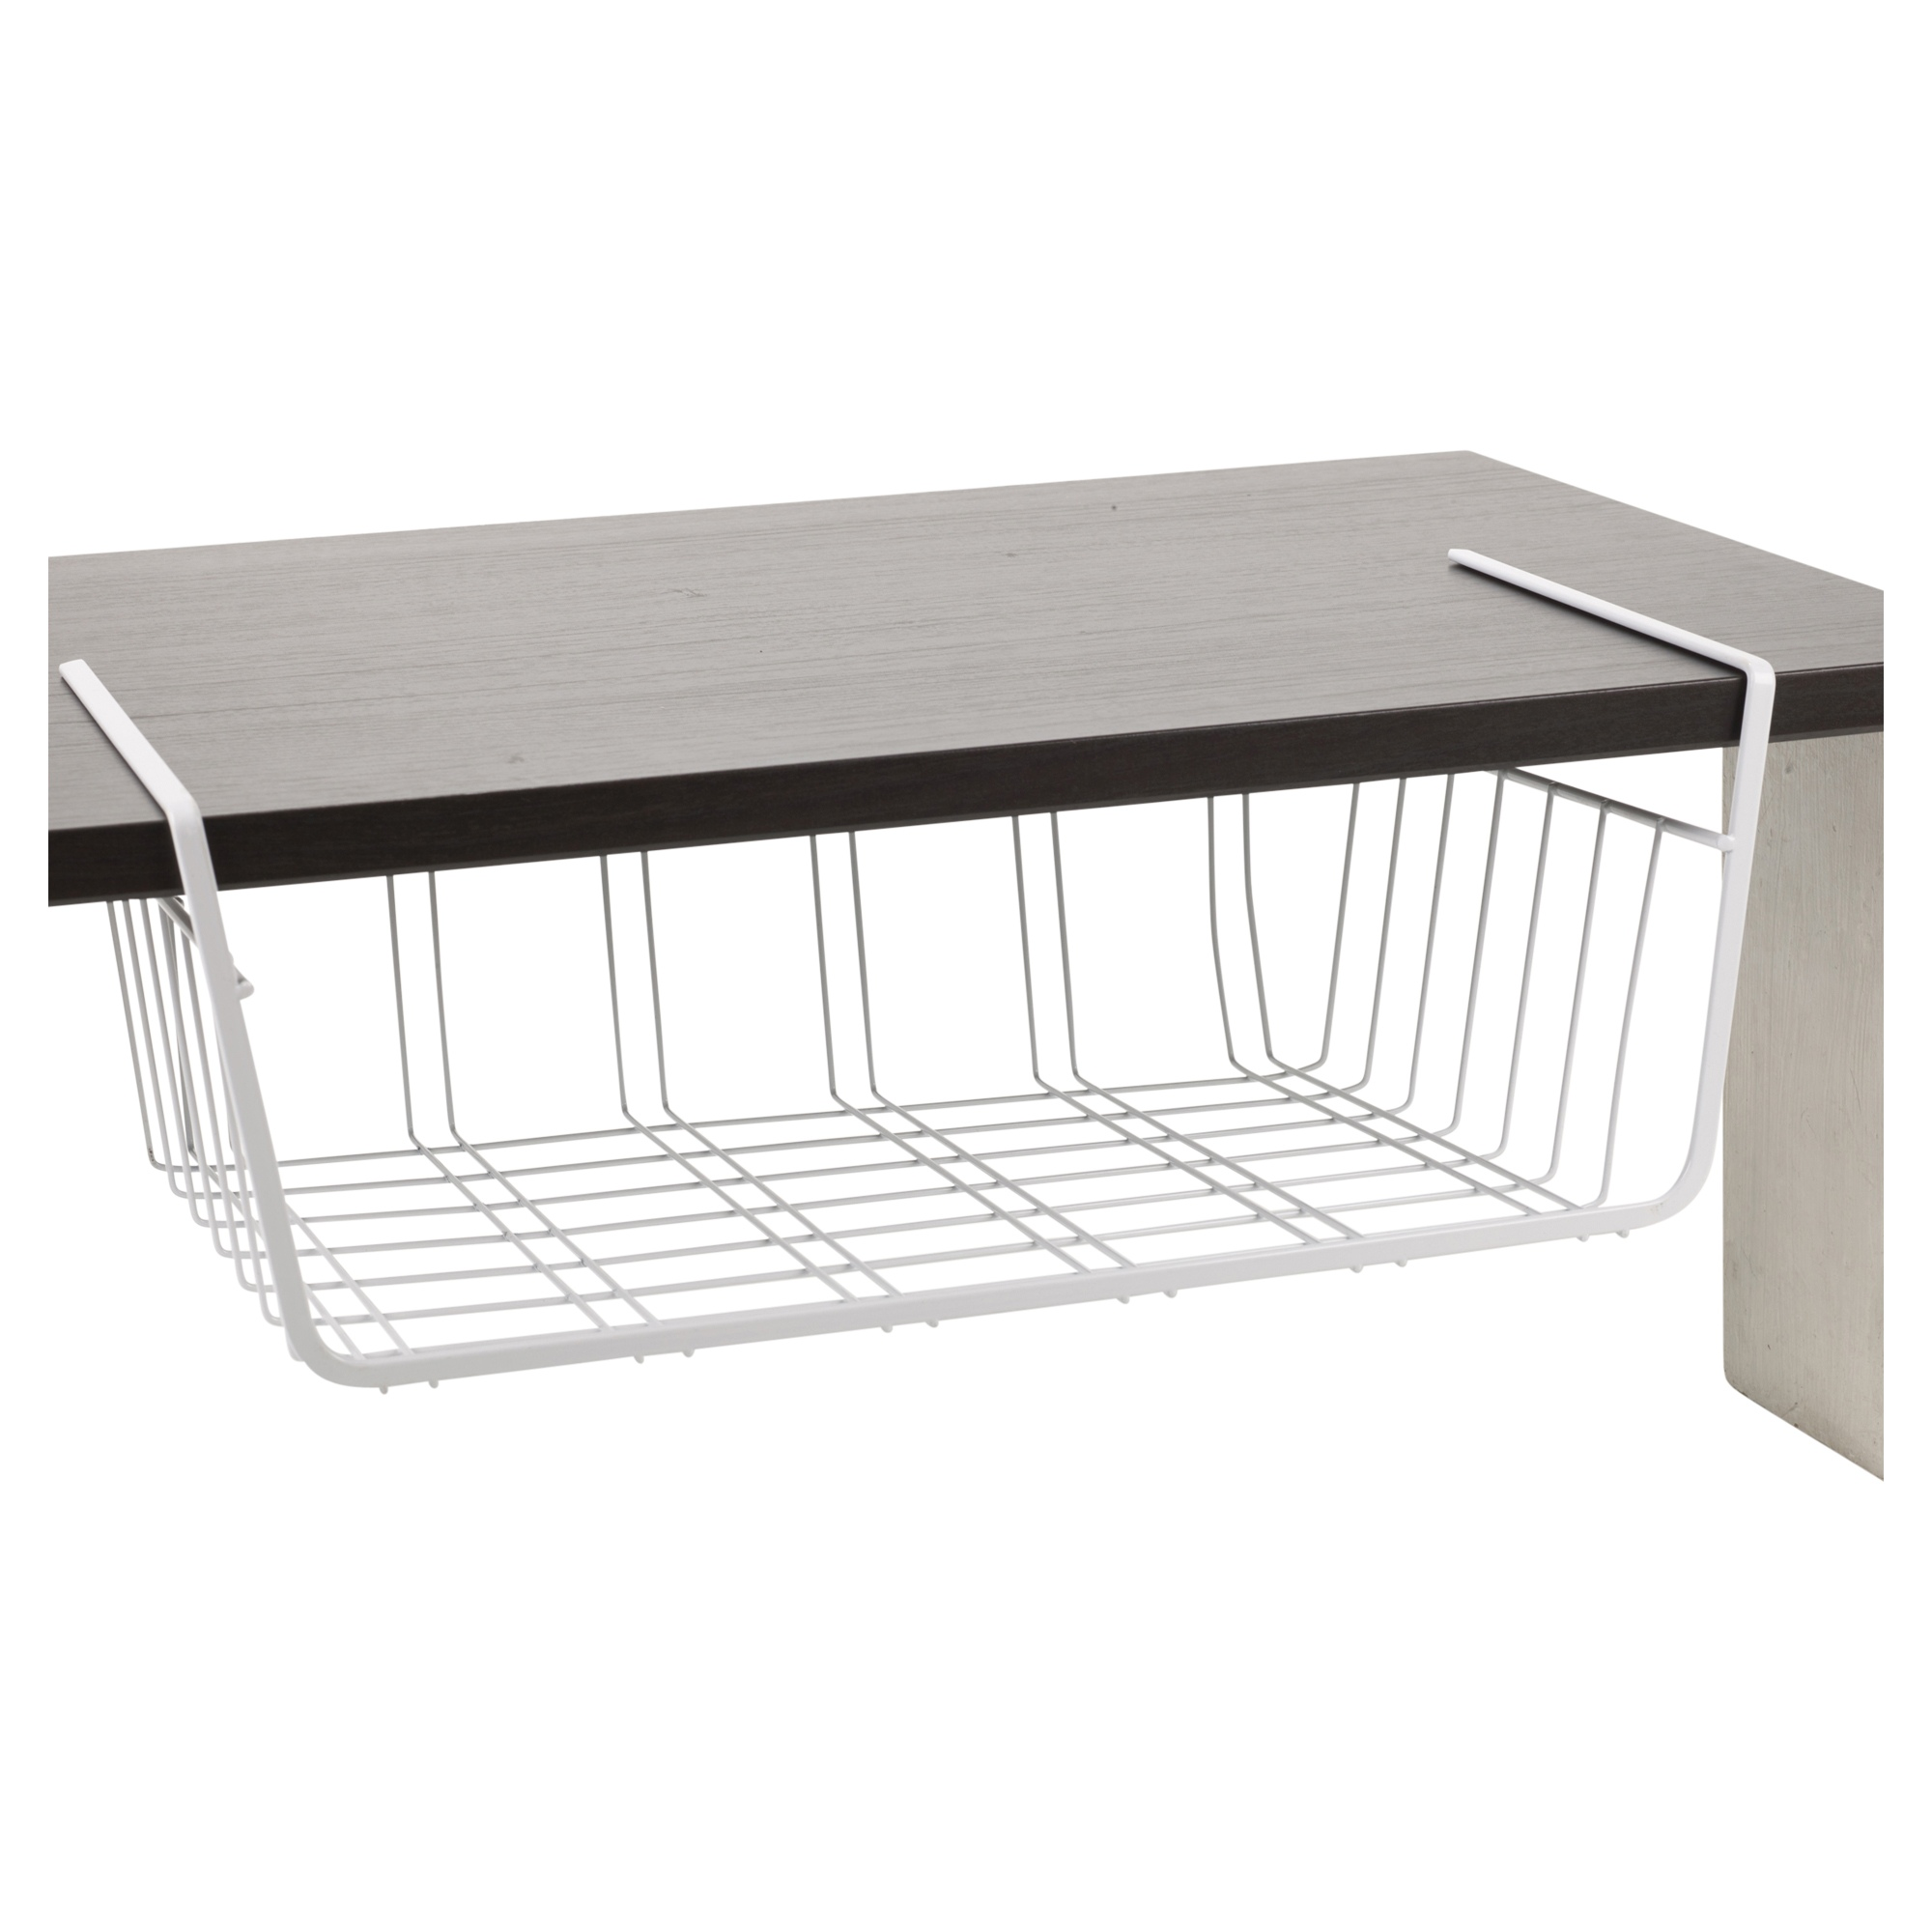 Kitchen Cabinet Baskets: 2 X Under Shelf Table Storage Basket Rack Kitchen Wire